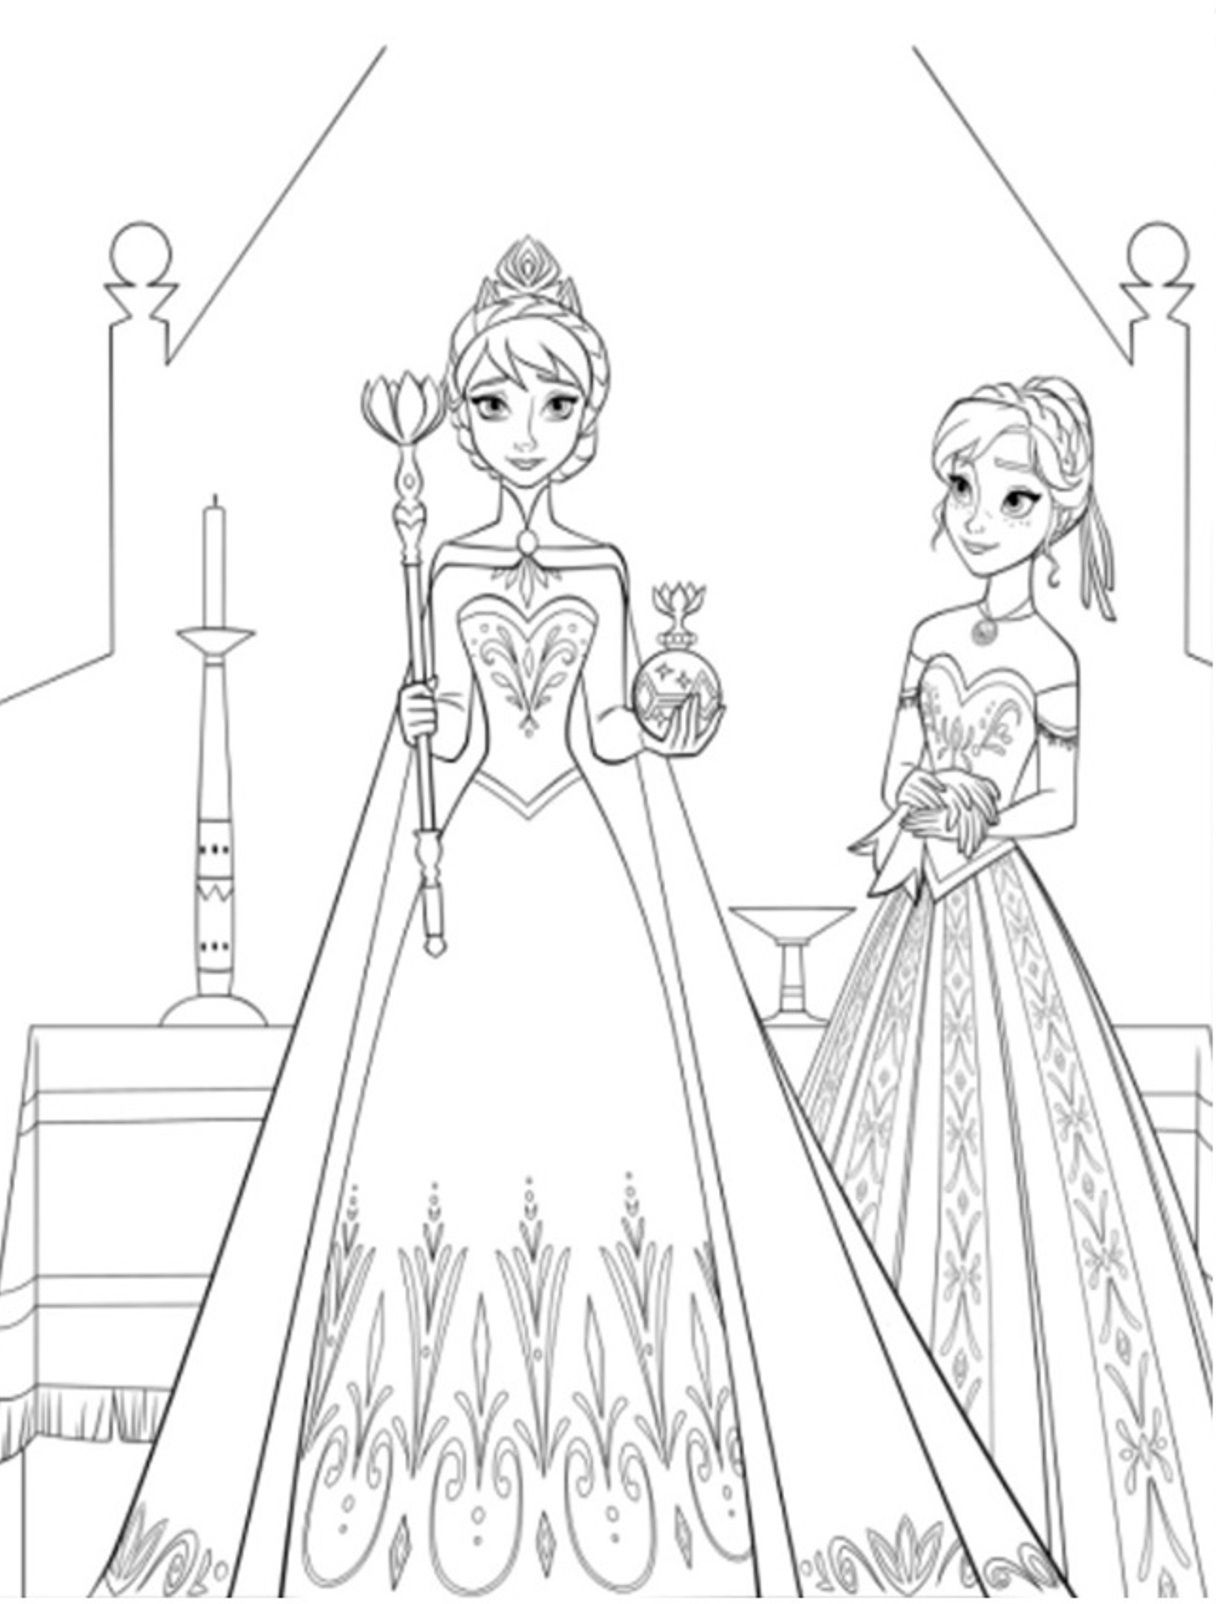 Coloring book printable frozen - Disney Frozen Anna Coloring Page S Frozen Coloring Pages Anna And Elsa